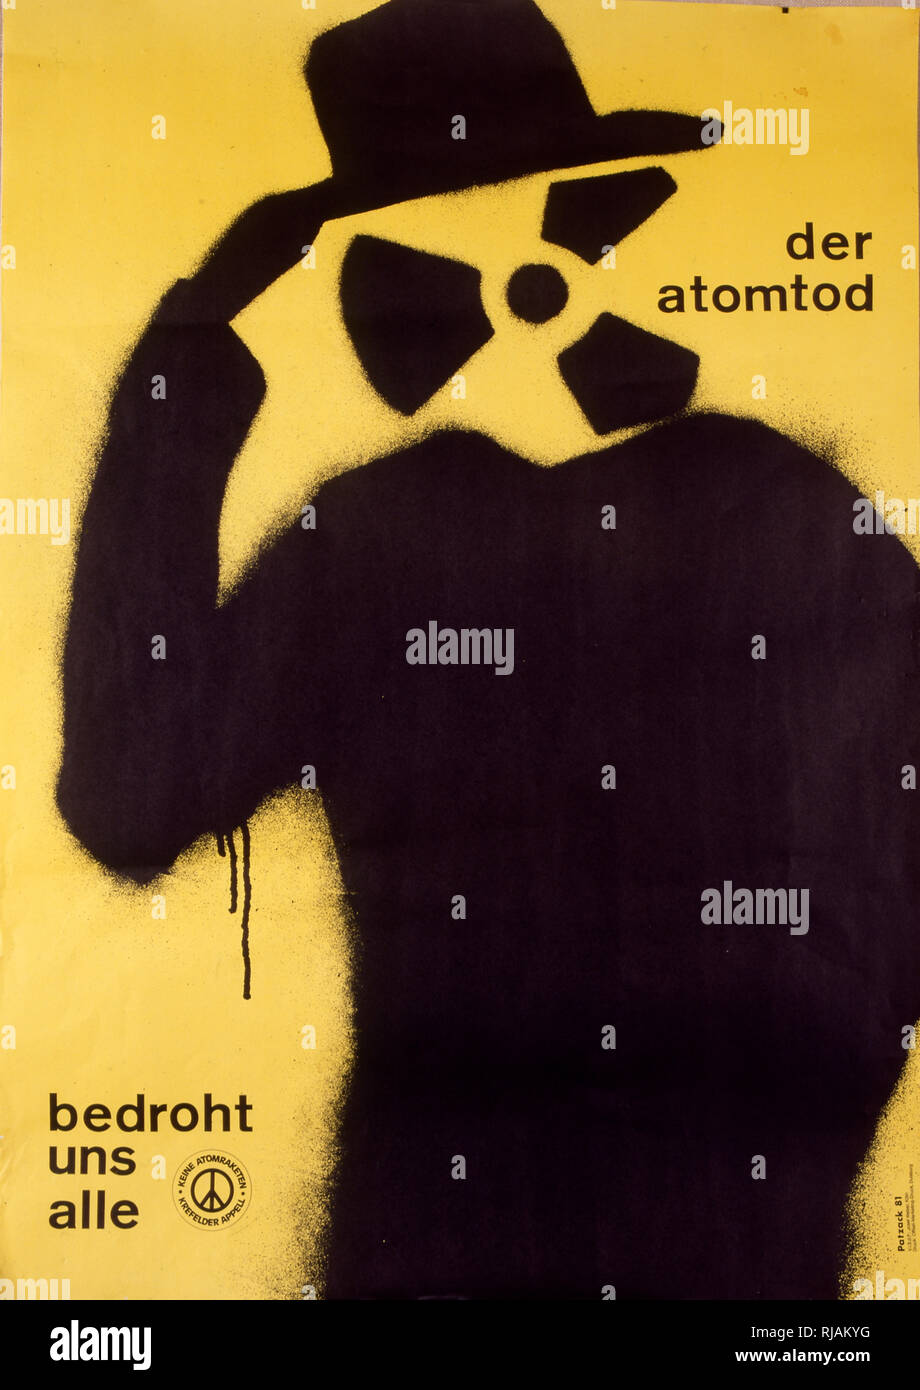 German Nuclear disarmament poster, by Bernhard Patzack, 1981. 'Der Atomtod bedroht uns alle - Keine Atomraketen'.  Nuclear death threatens us all - no nuclear missile - Stock Image